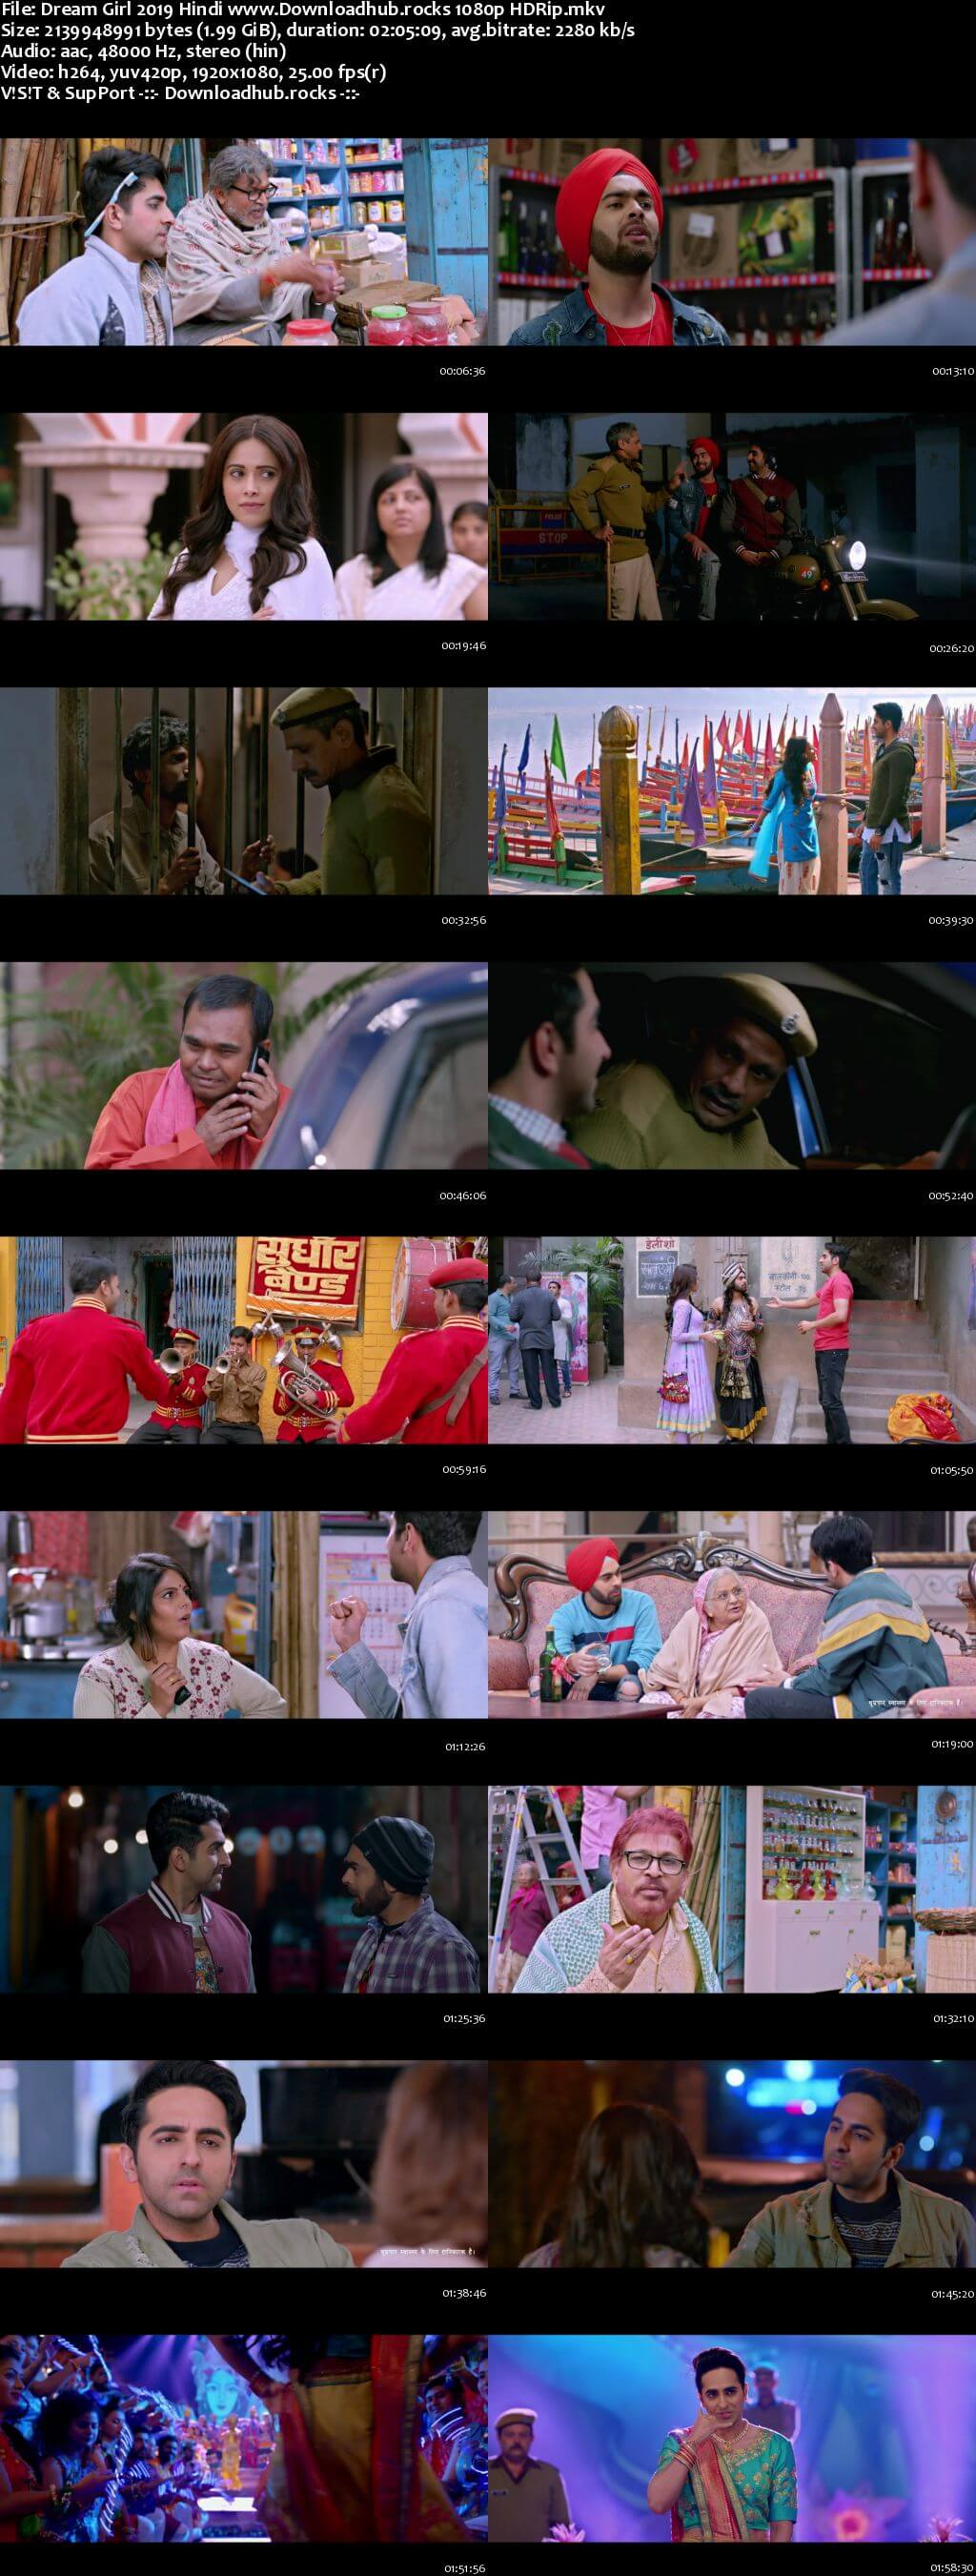 Dream Girl 2019 Hindi 1080p HDRip x264